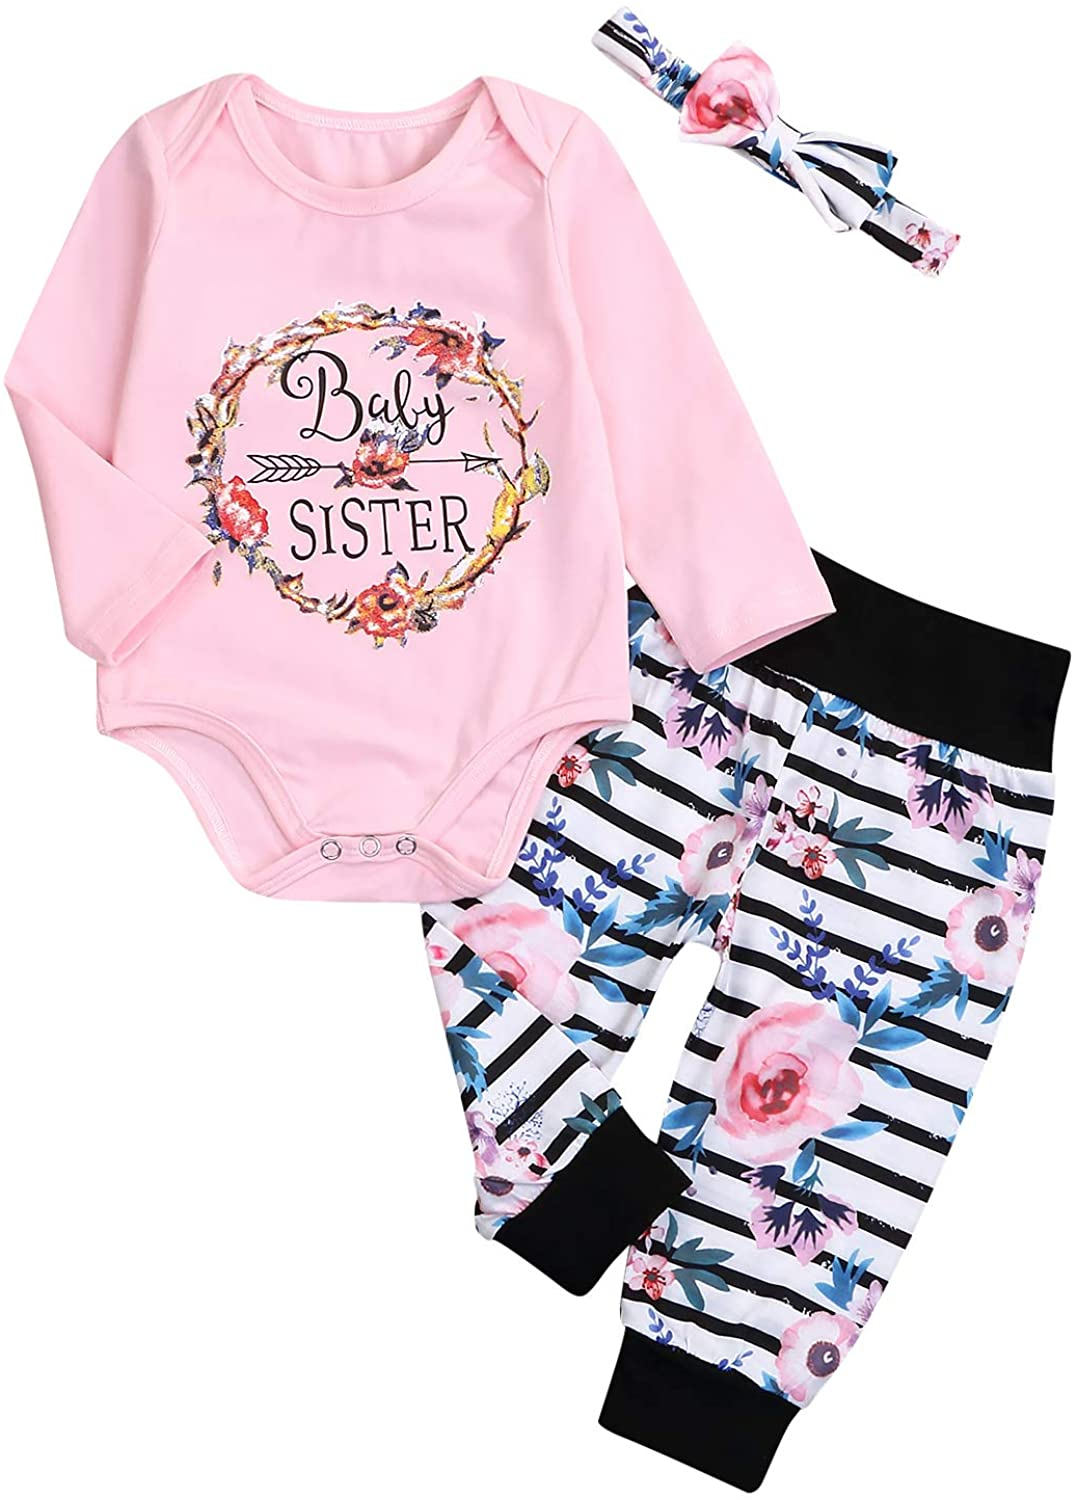 Toddler Baby Girls Outfit Set Long Sleeve Printed Shirts Romper Floral Pant Sets